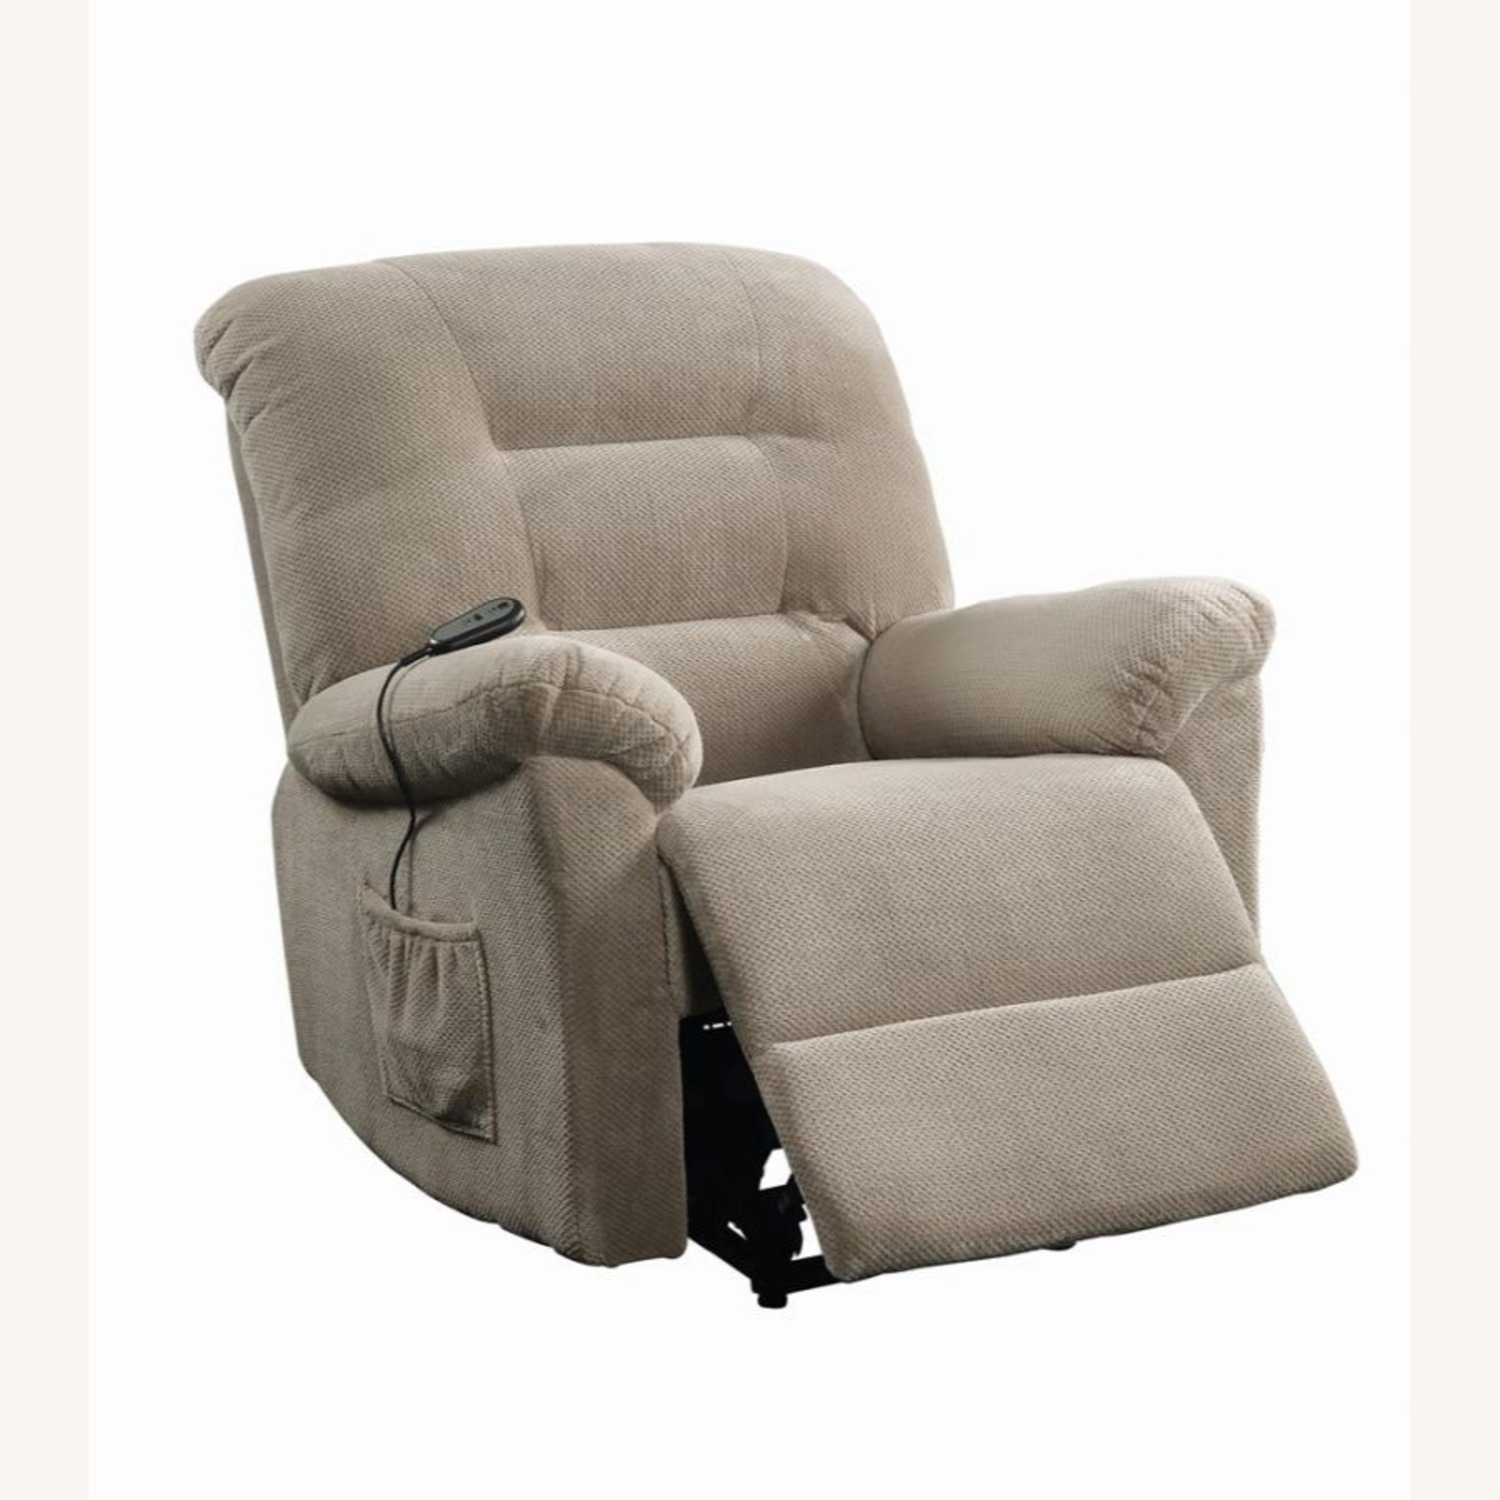 Power Lift Recliner In Beige Chenille Fabric - image-1